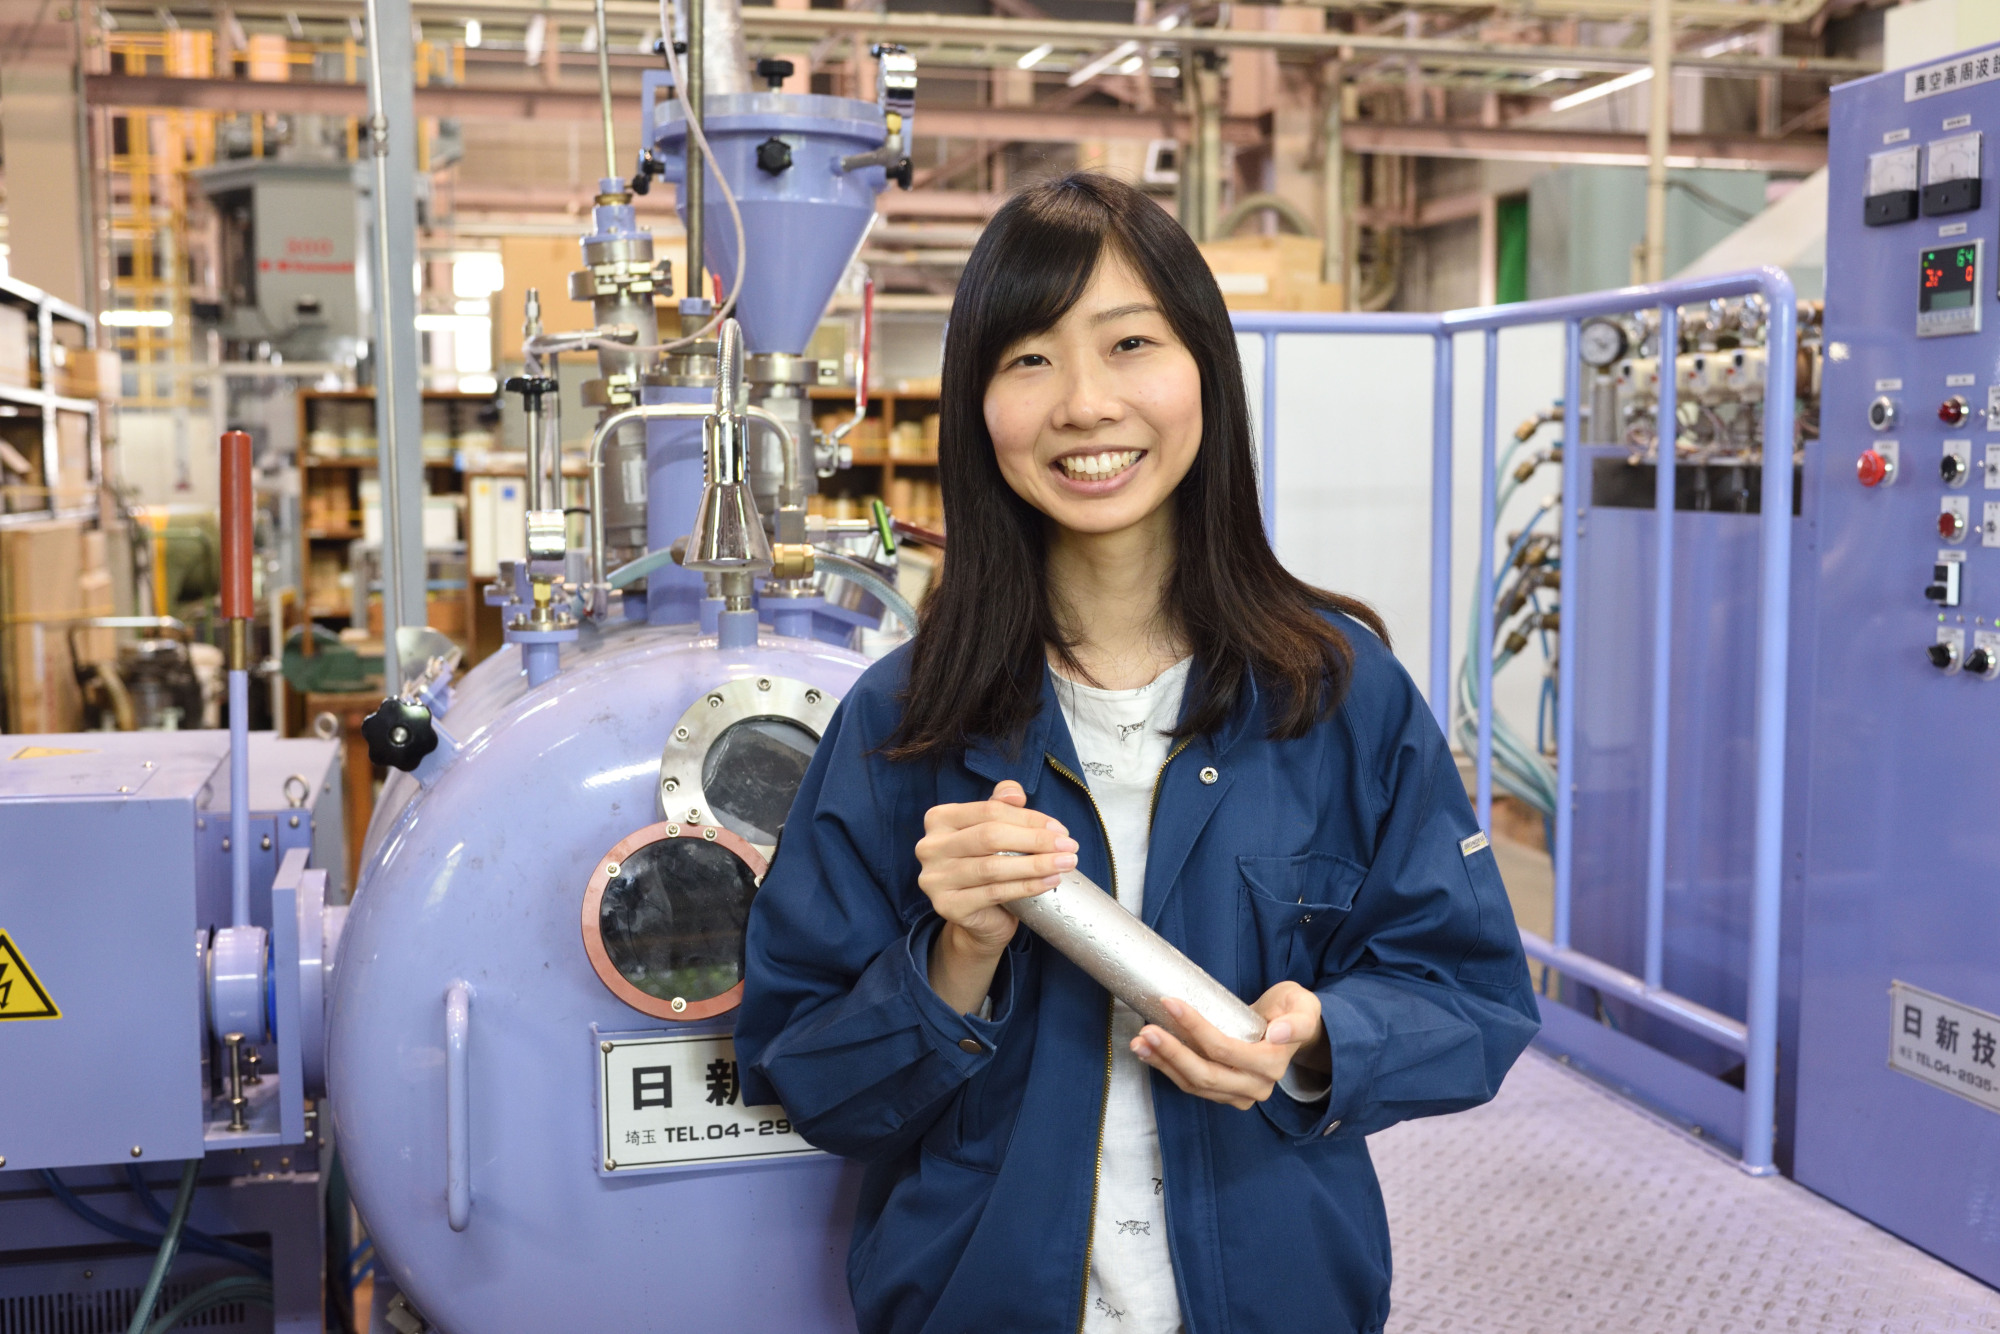 Yukiko Ogawa, 28, stands next to the induction melting furnace in her lab at the National Institute for Materials Science in Tsukuba, Ibaraki Prefecture.  | NATIONAL INSTITUTE FOR MATERIALS SCIENCE